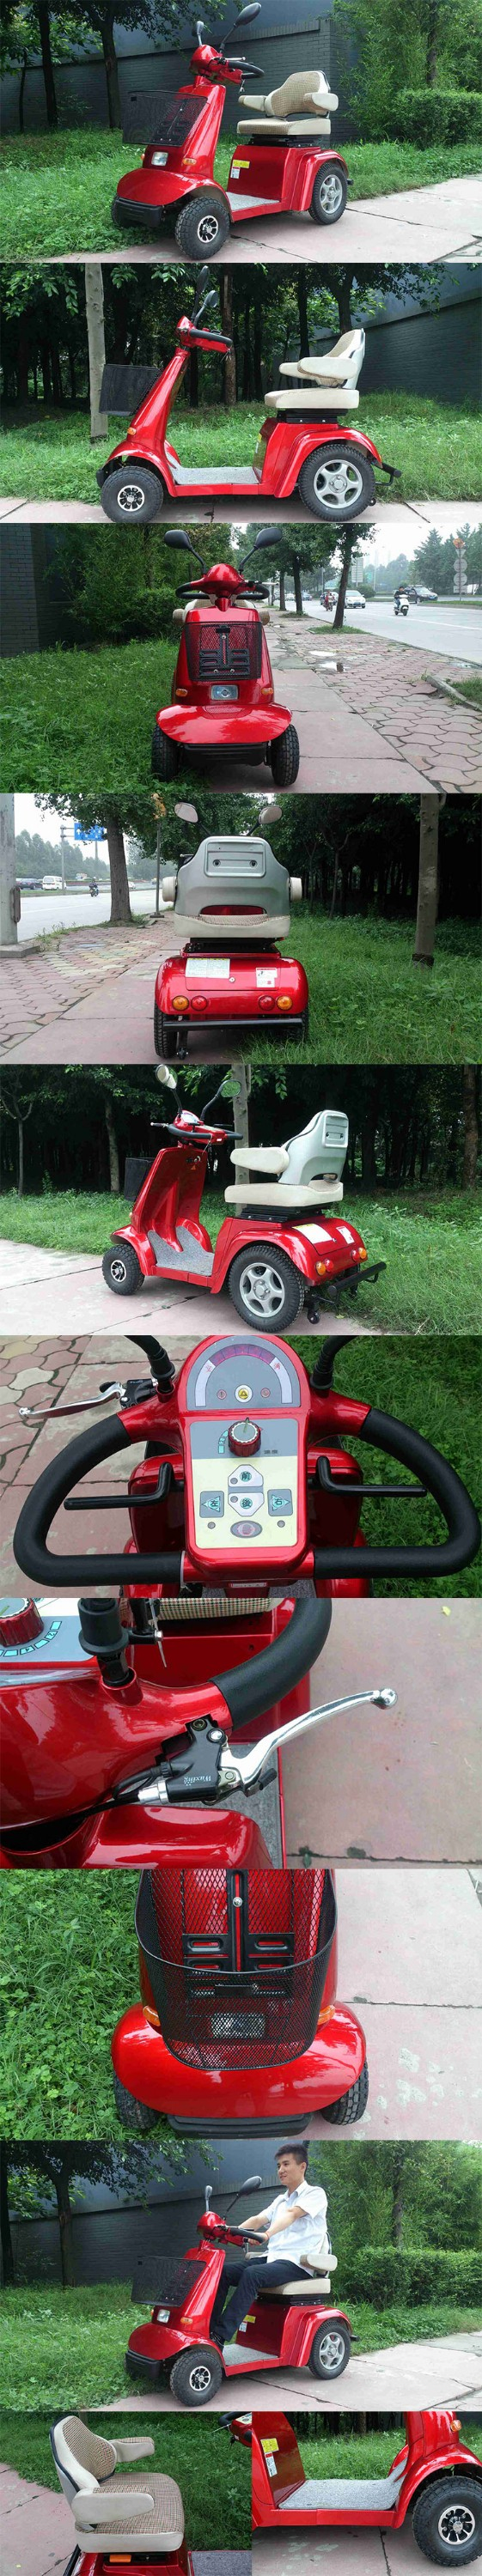 Powered electric mobility motorized scooter for the aged for Motorized scooters for the elderly